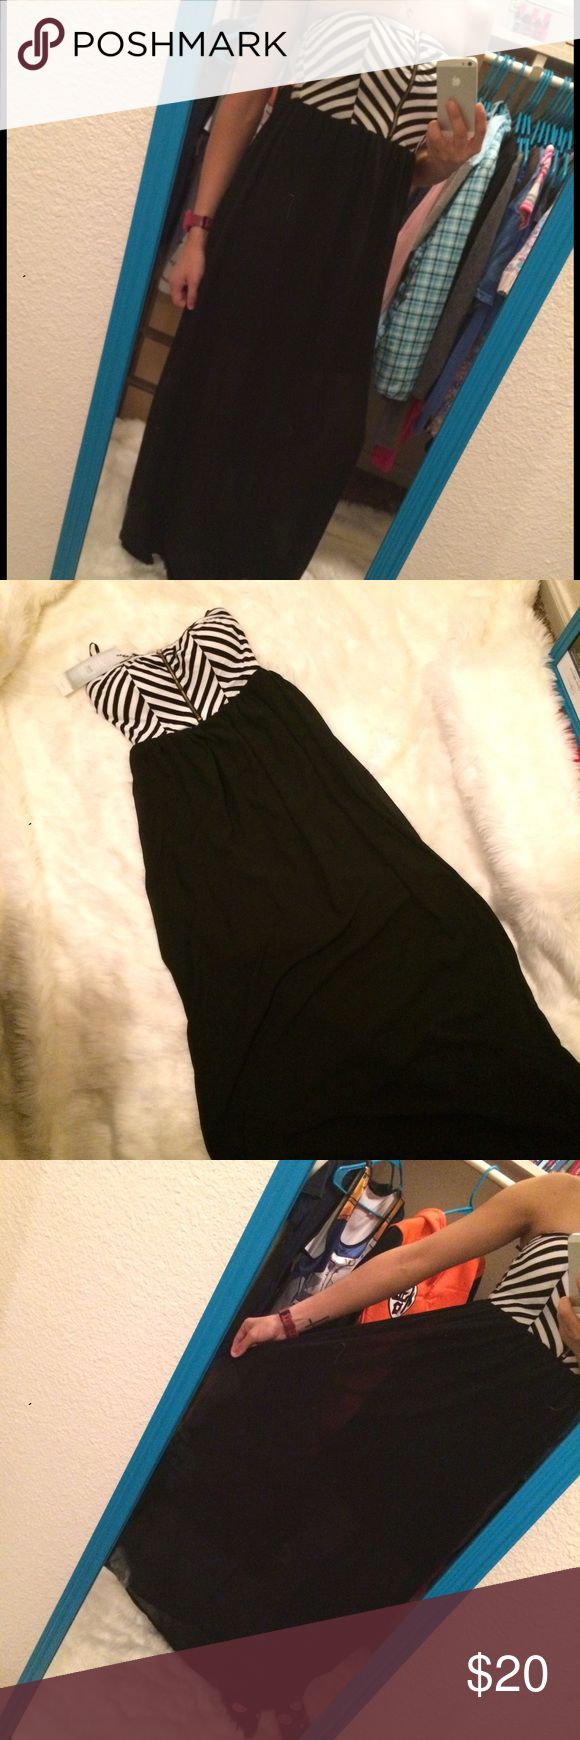 """New with tags attached stripe maxi dress sz M ♥️All my items are cross posted so please understand in case I have to cancel a transaction it's due to being sold somewhere else thanks 💕 Brand new with tags only worn for photo has built in mini slip and sheer outer bottom layer I'm 5'5"""" btw #sumer #stripes #blackandwhite #black #white #mom #momlife #juniors #nwt Iris Dresses Maxi"""